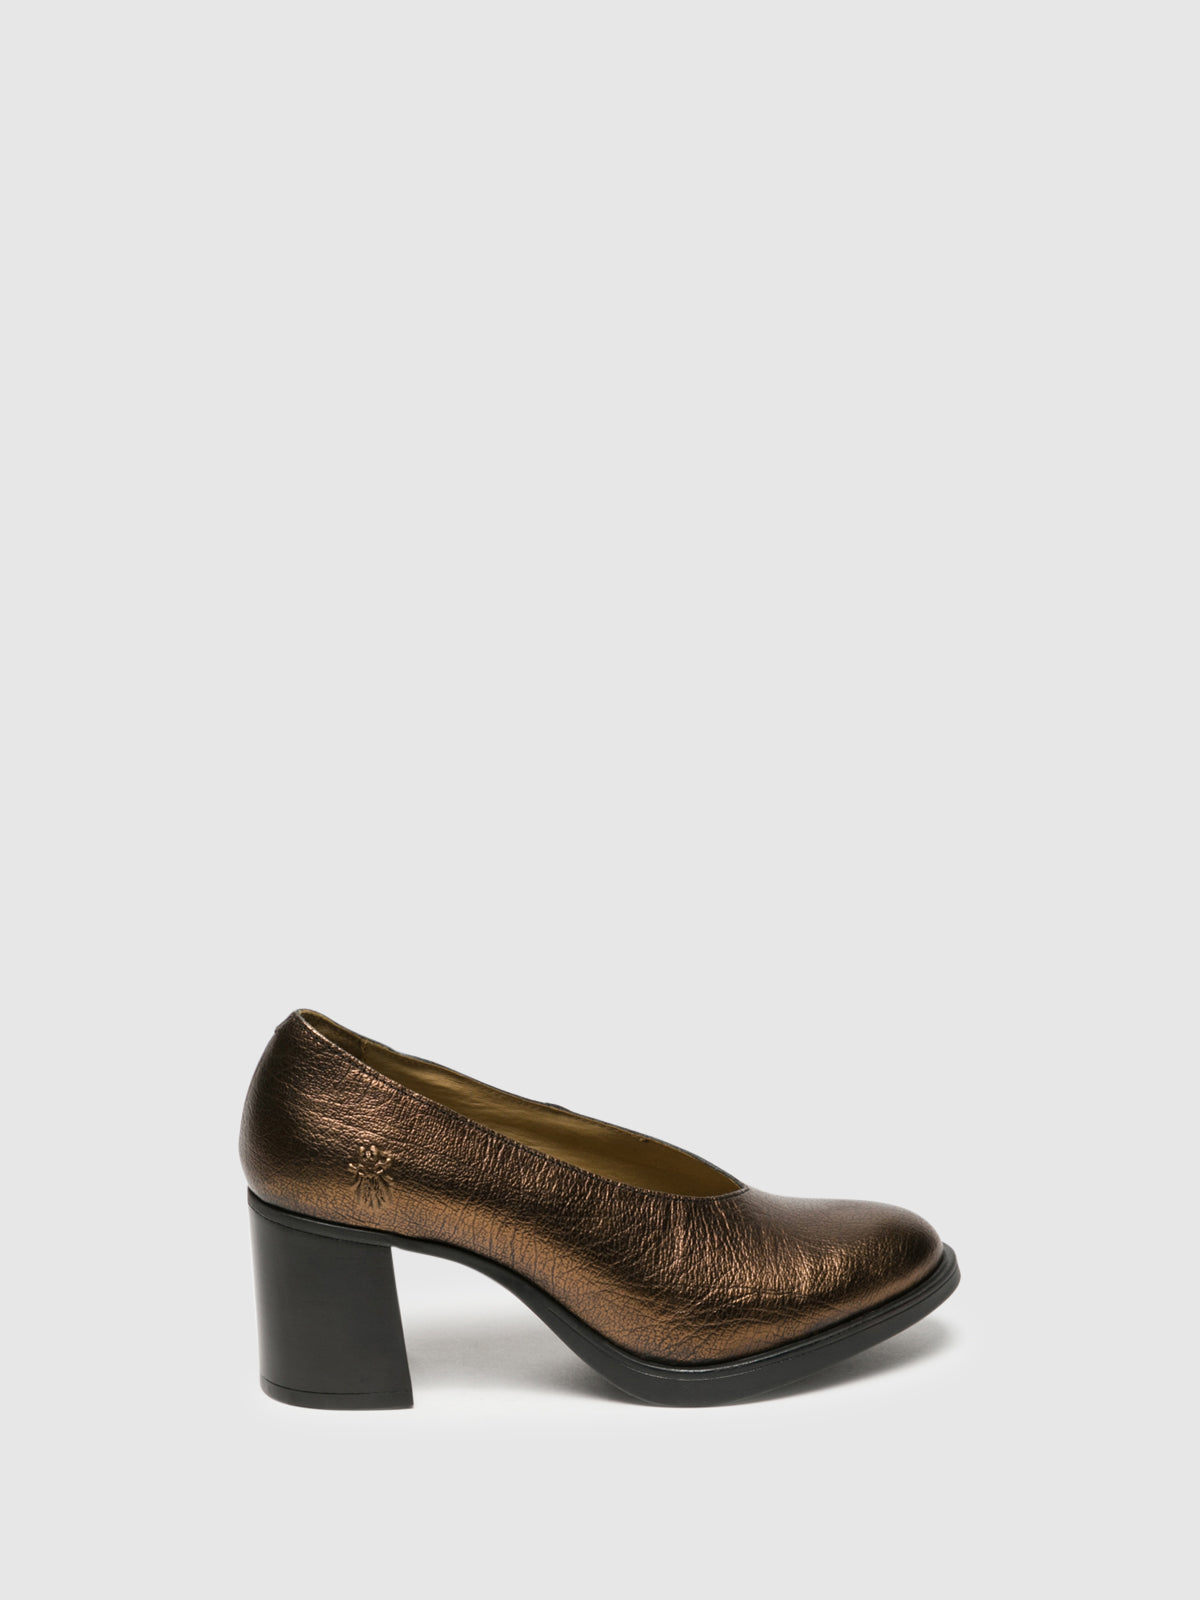 Fly London SandyBrown Block Heel Shoes